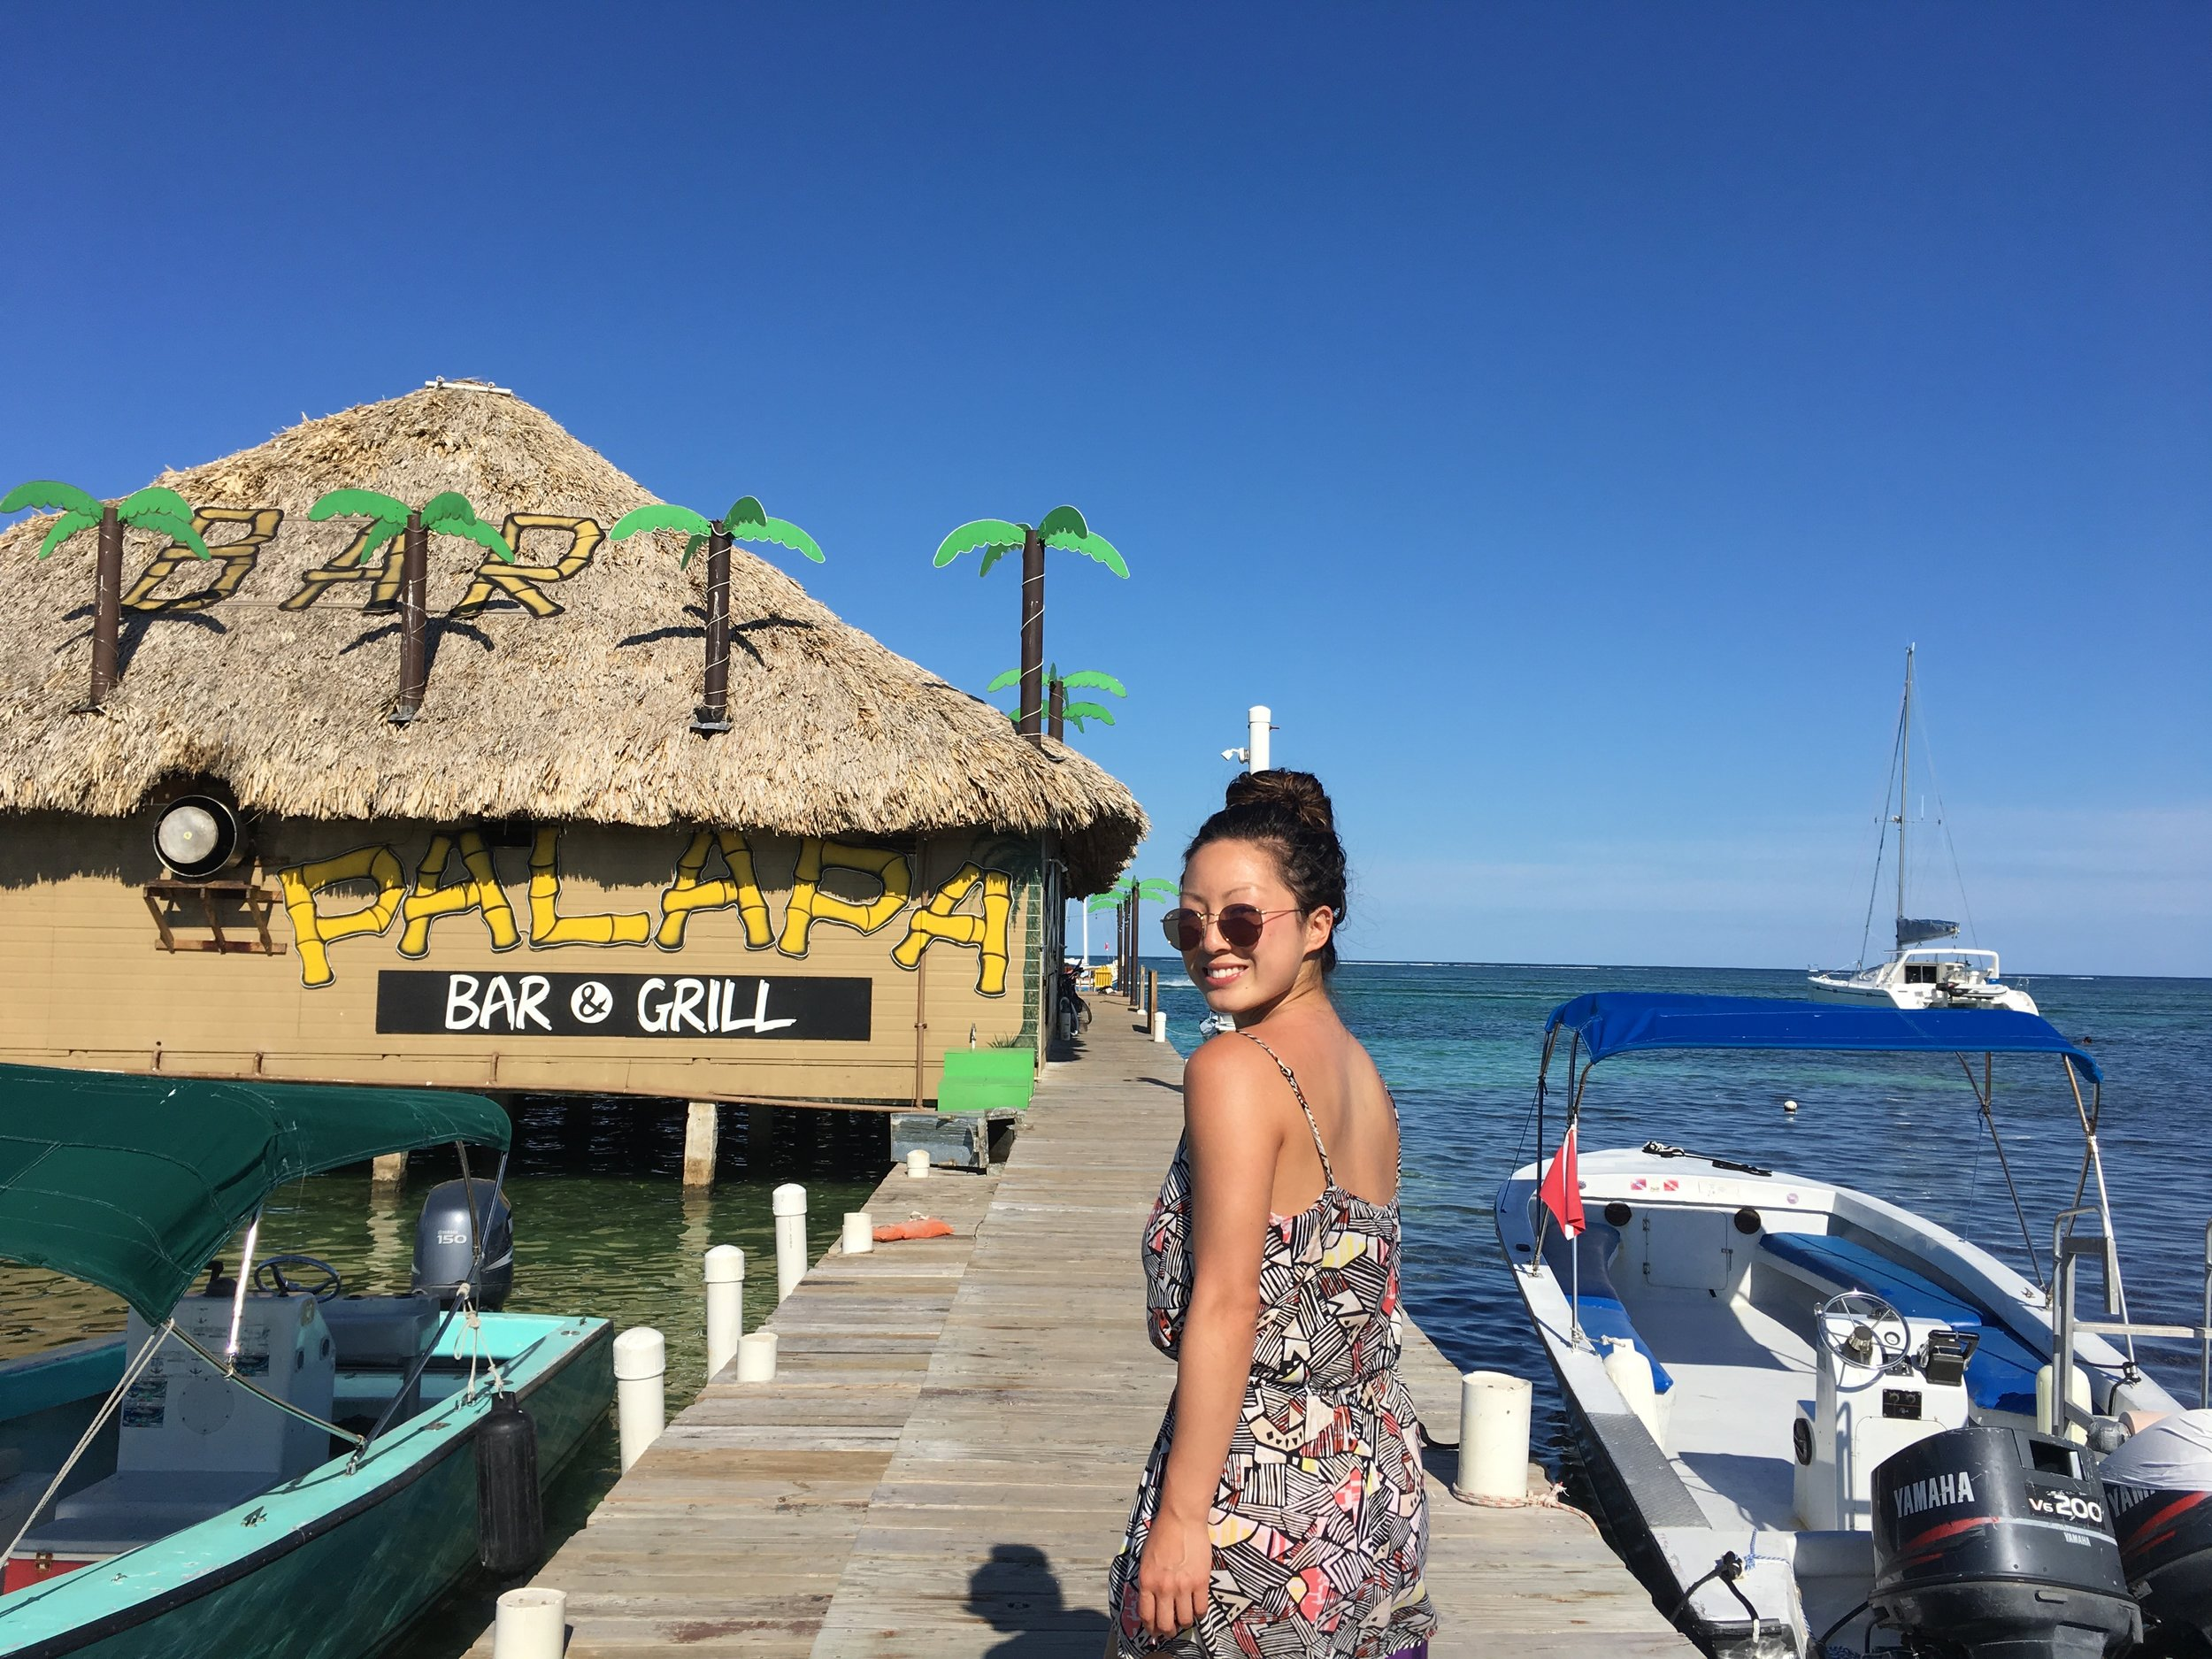 Palapa Bar and Grill - popular bar where all the tourists hang out